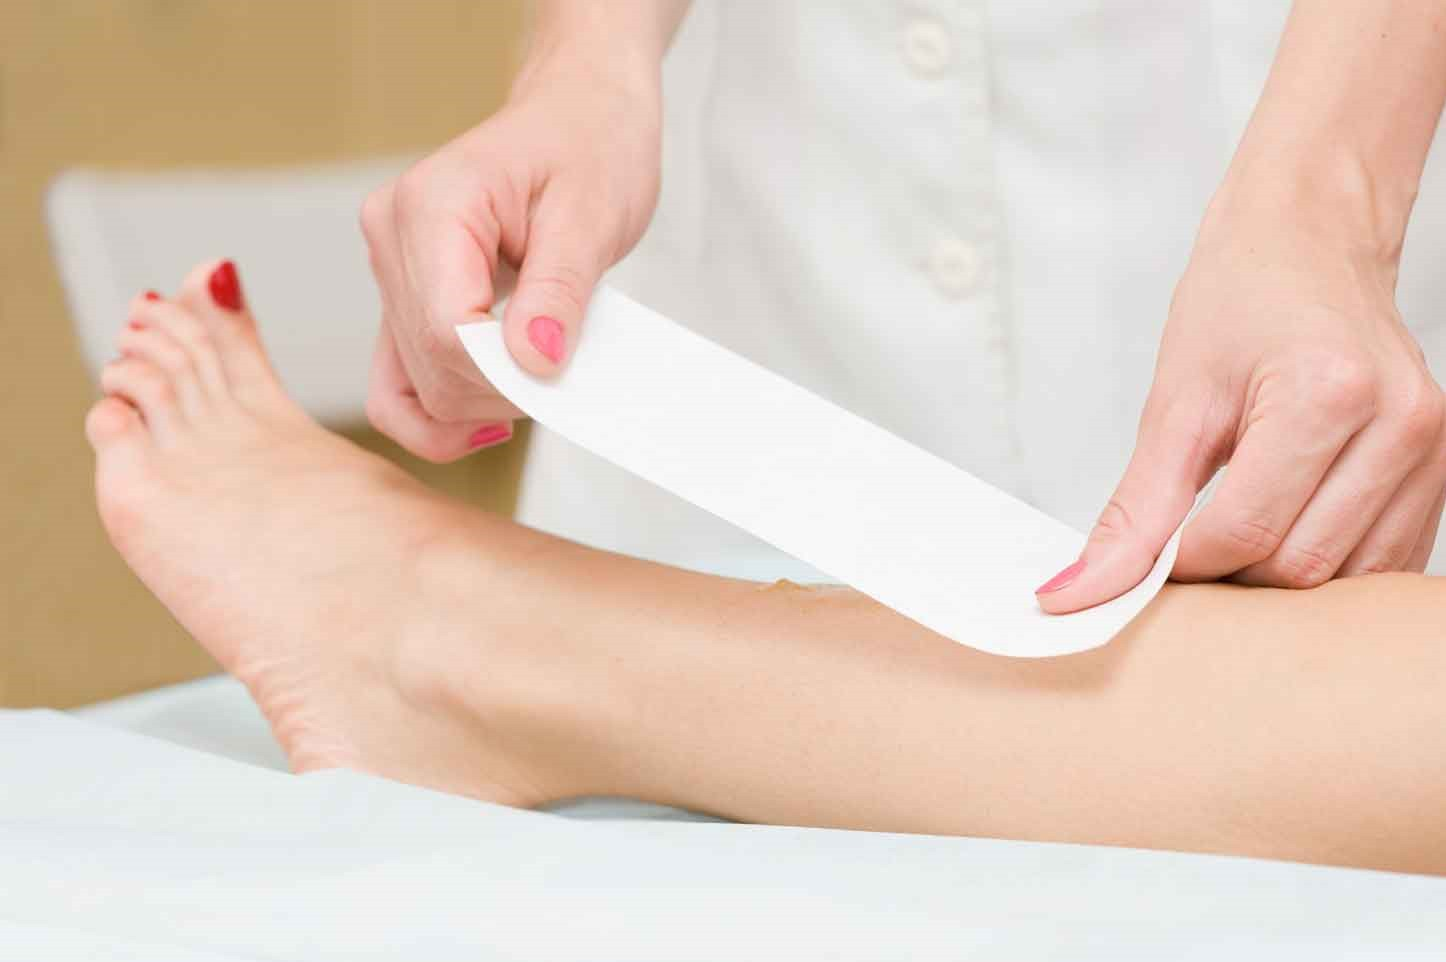 Things To Remember Before Waxing